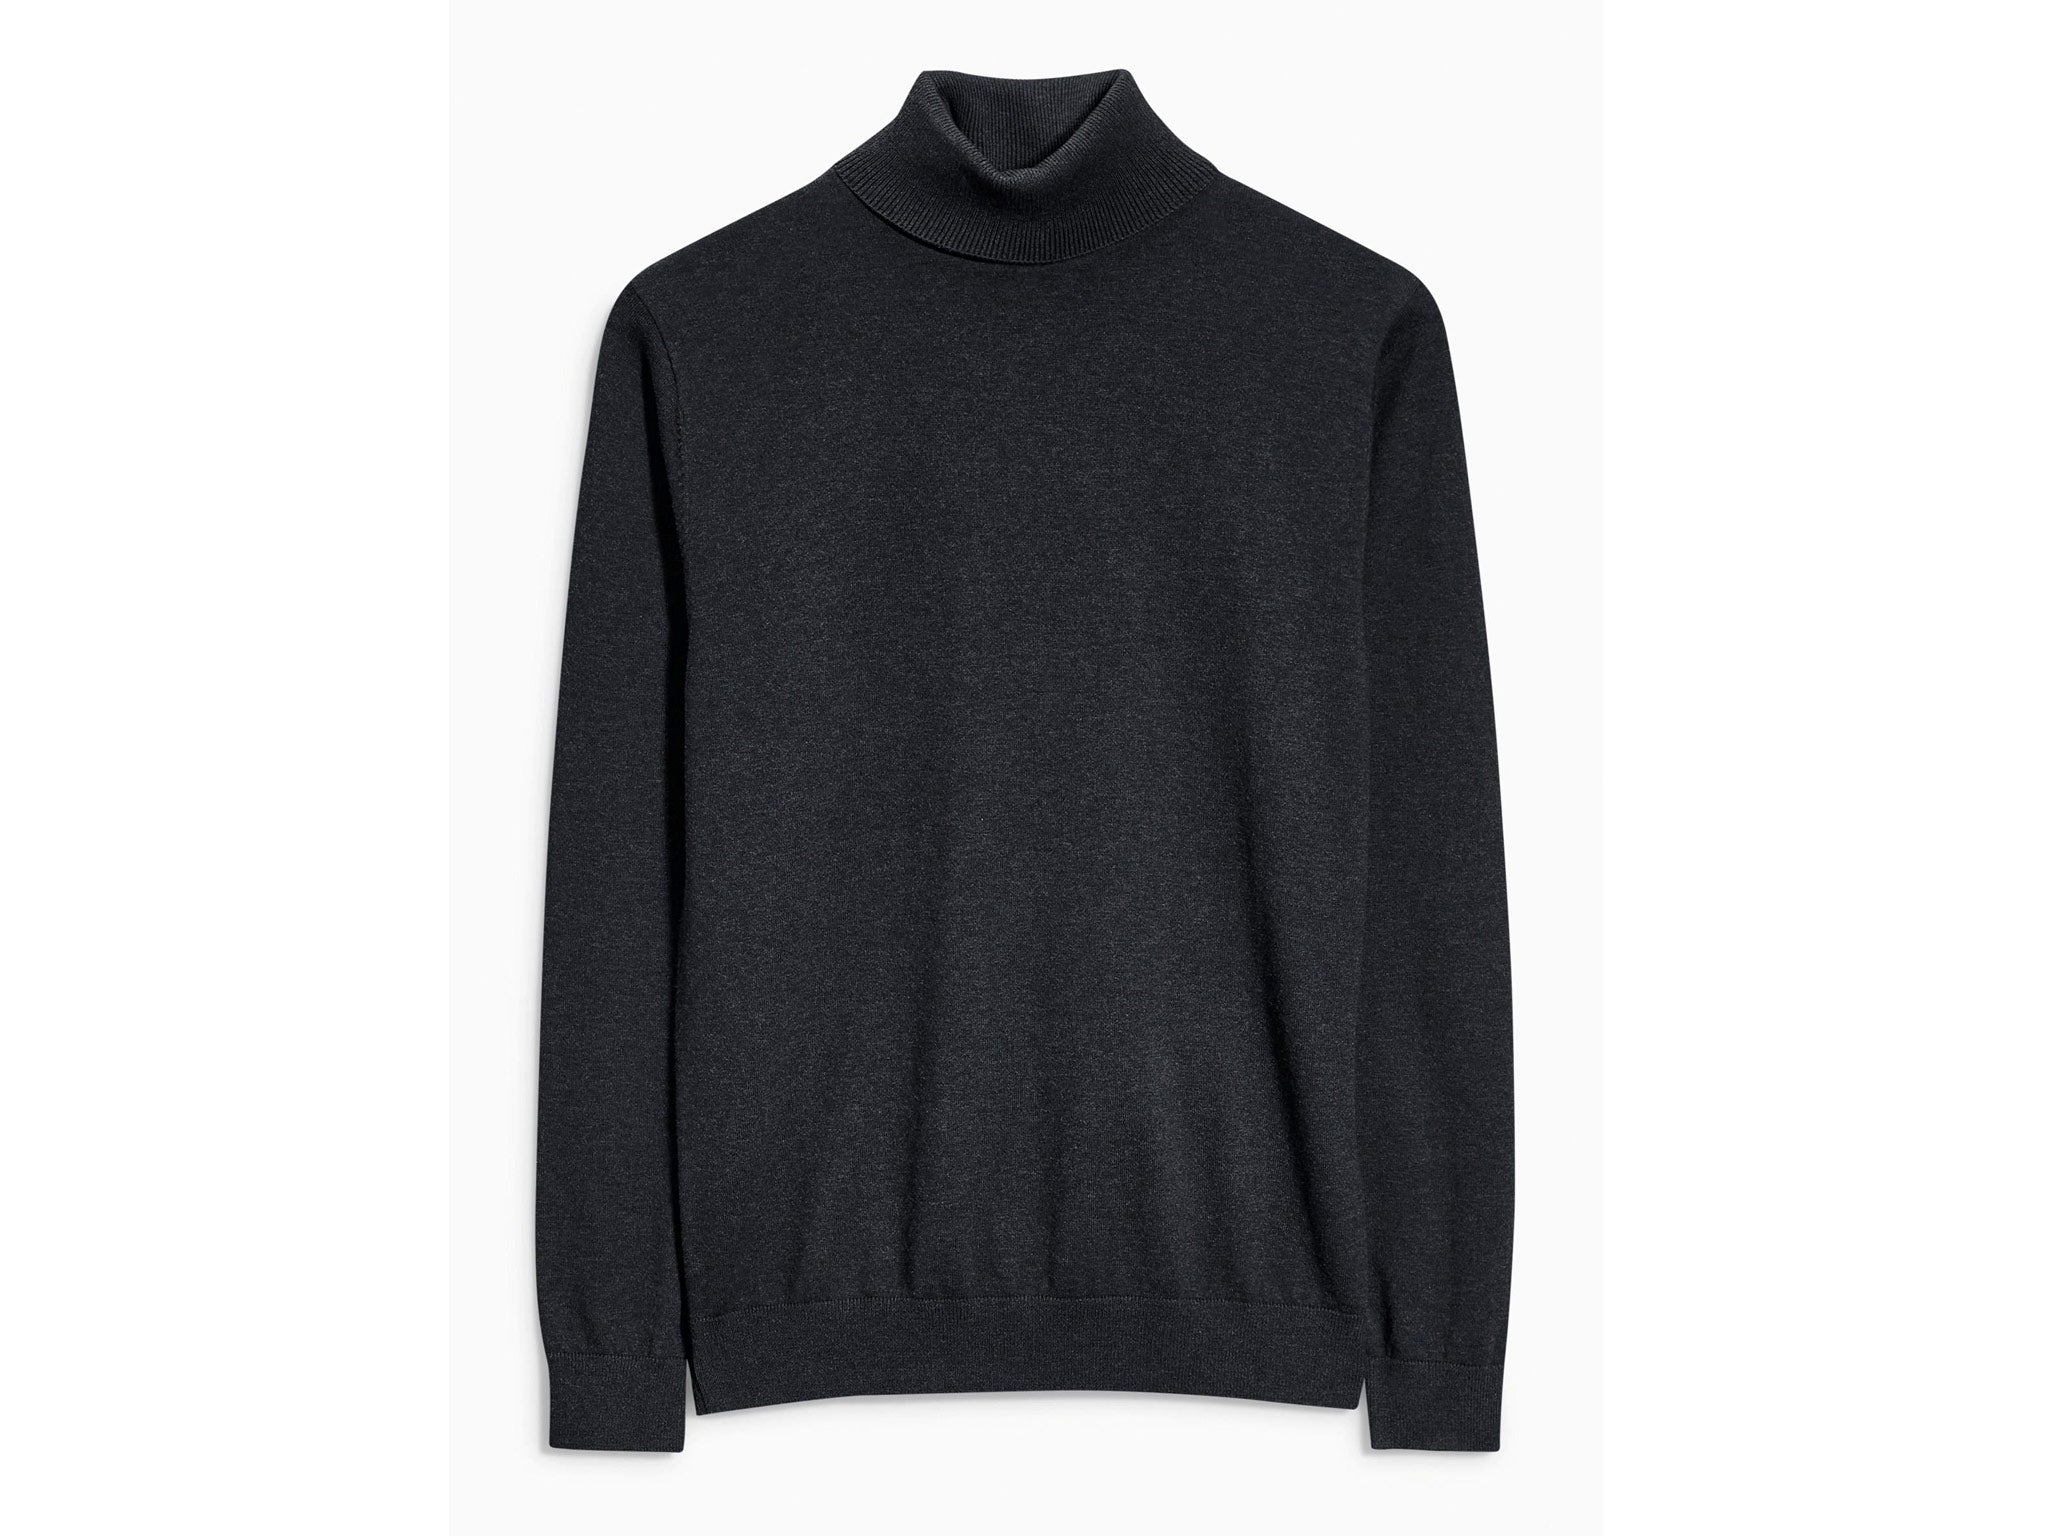 10 Best Mens Jumpers The Independent